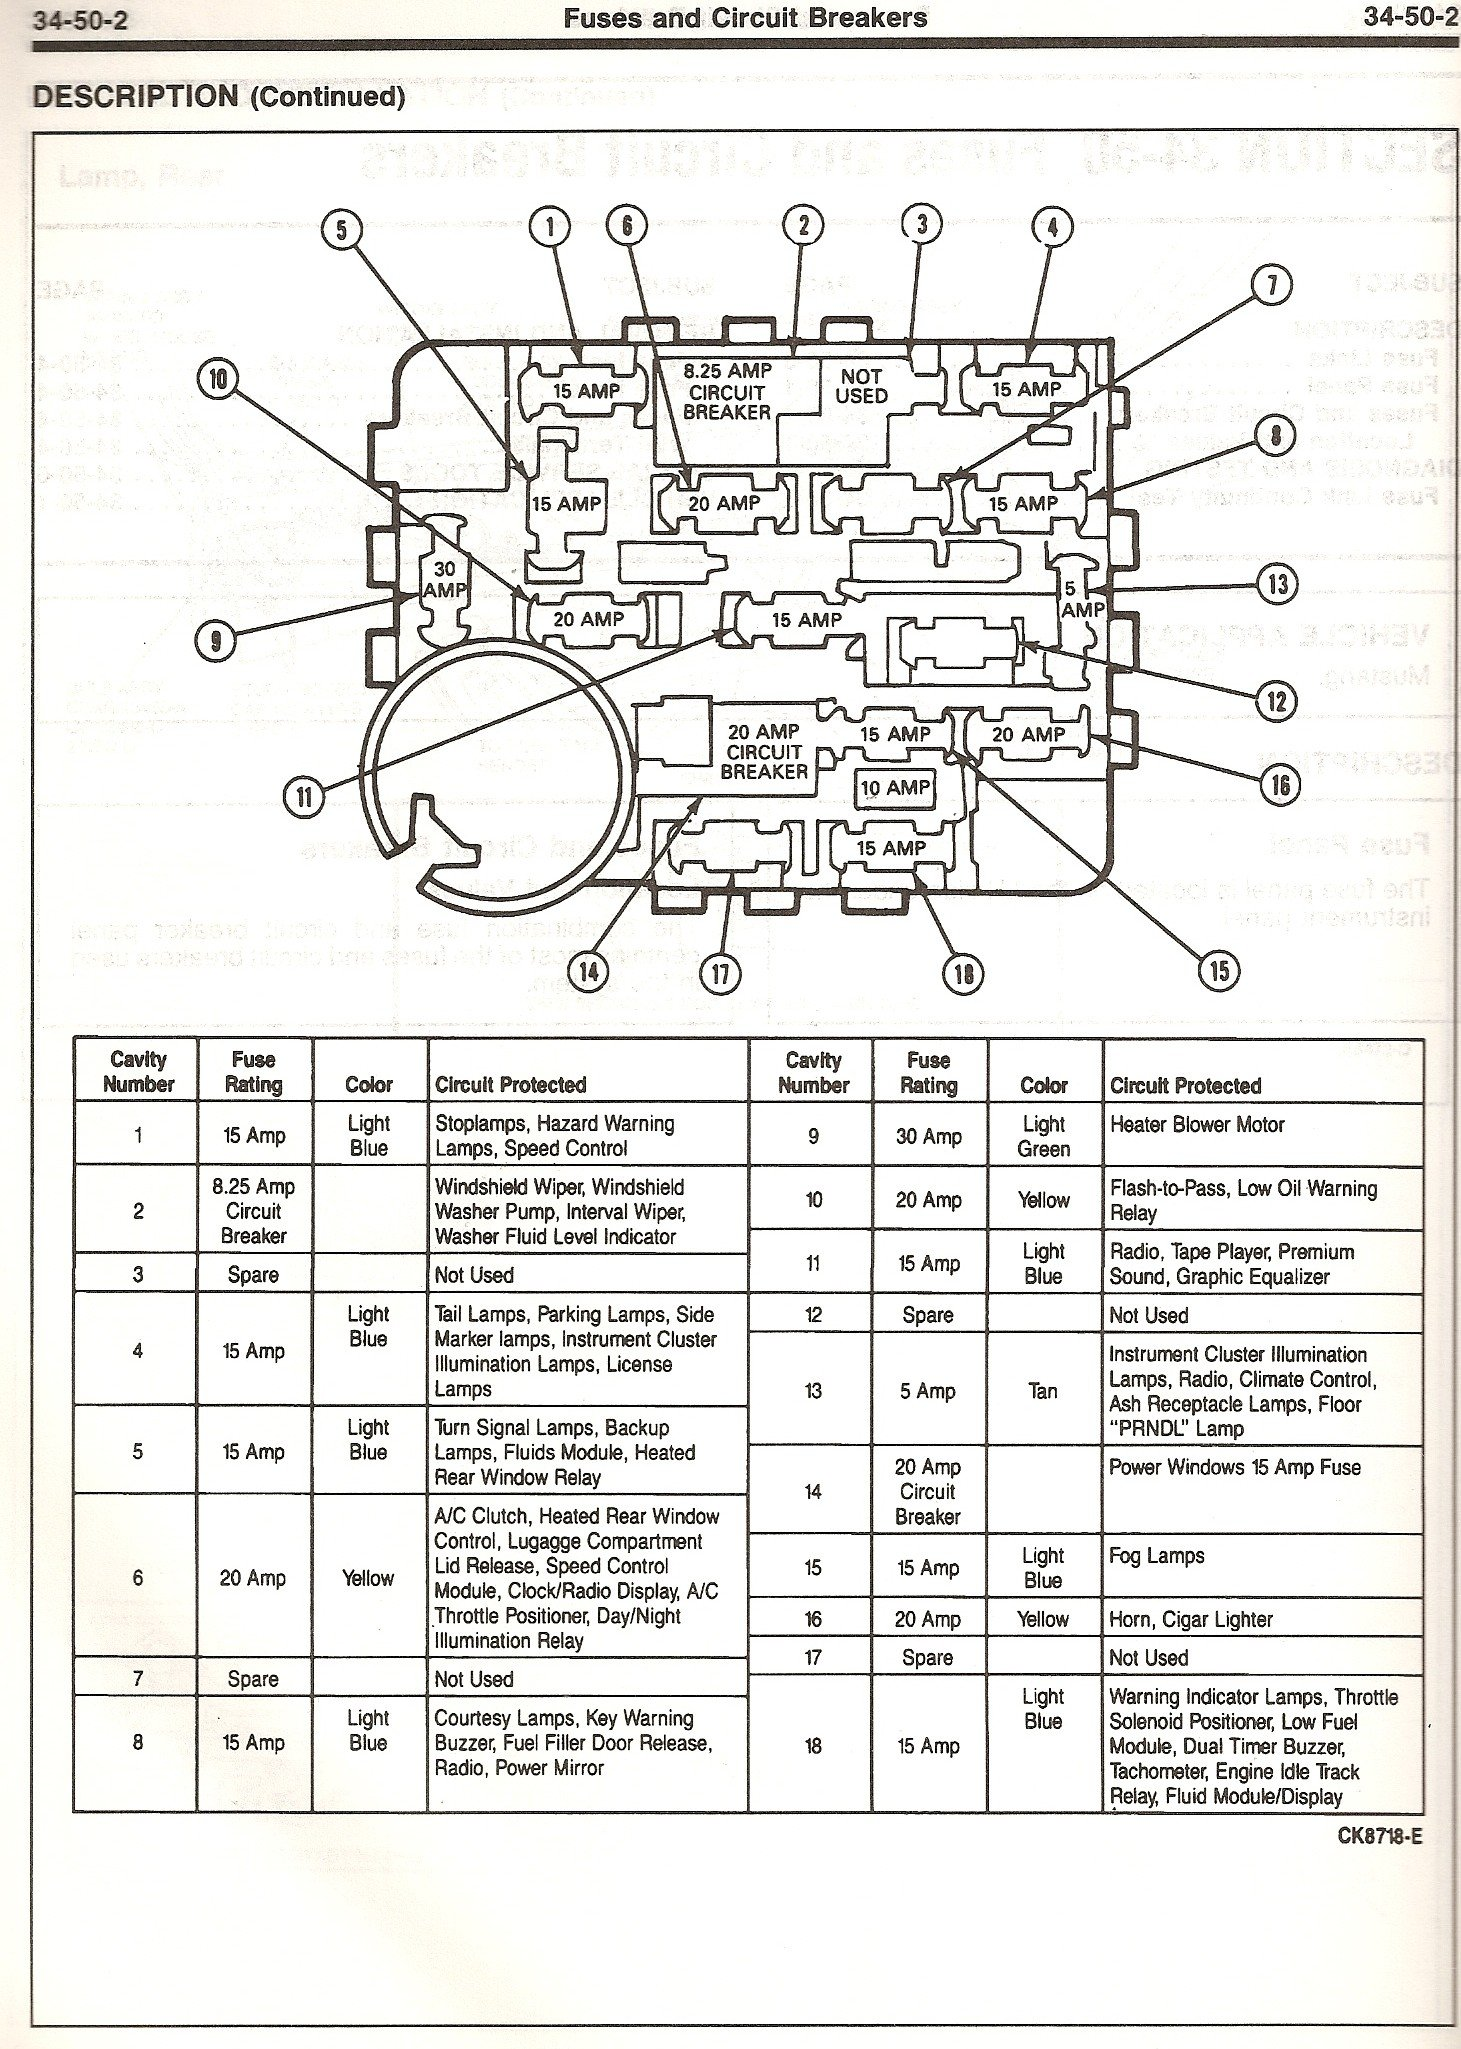 1990 2 3 mustang missing fuse panel diagram ford mustang 2003 pontiac grand  am 2.2 engine diagram 2003 pontiac grand am 2.2 engine diagram